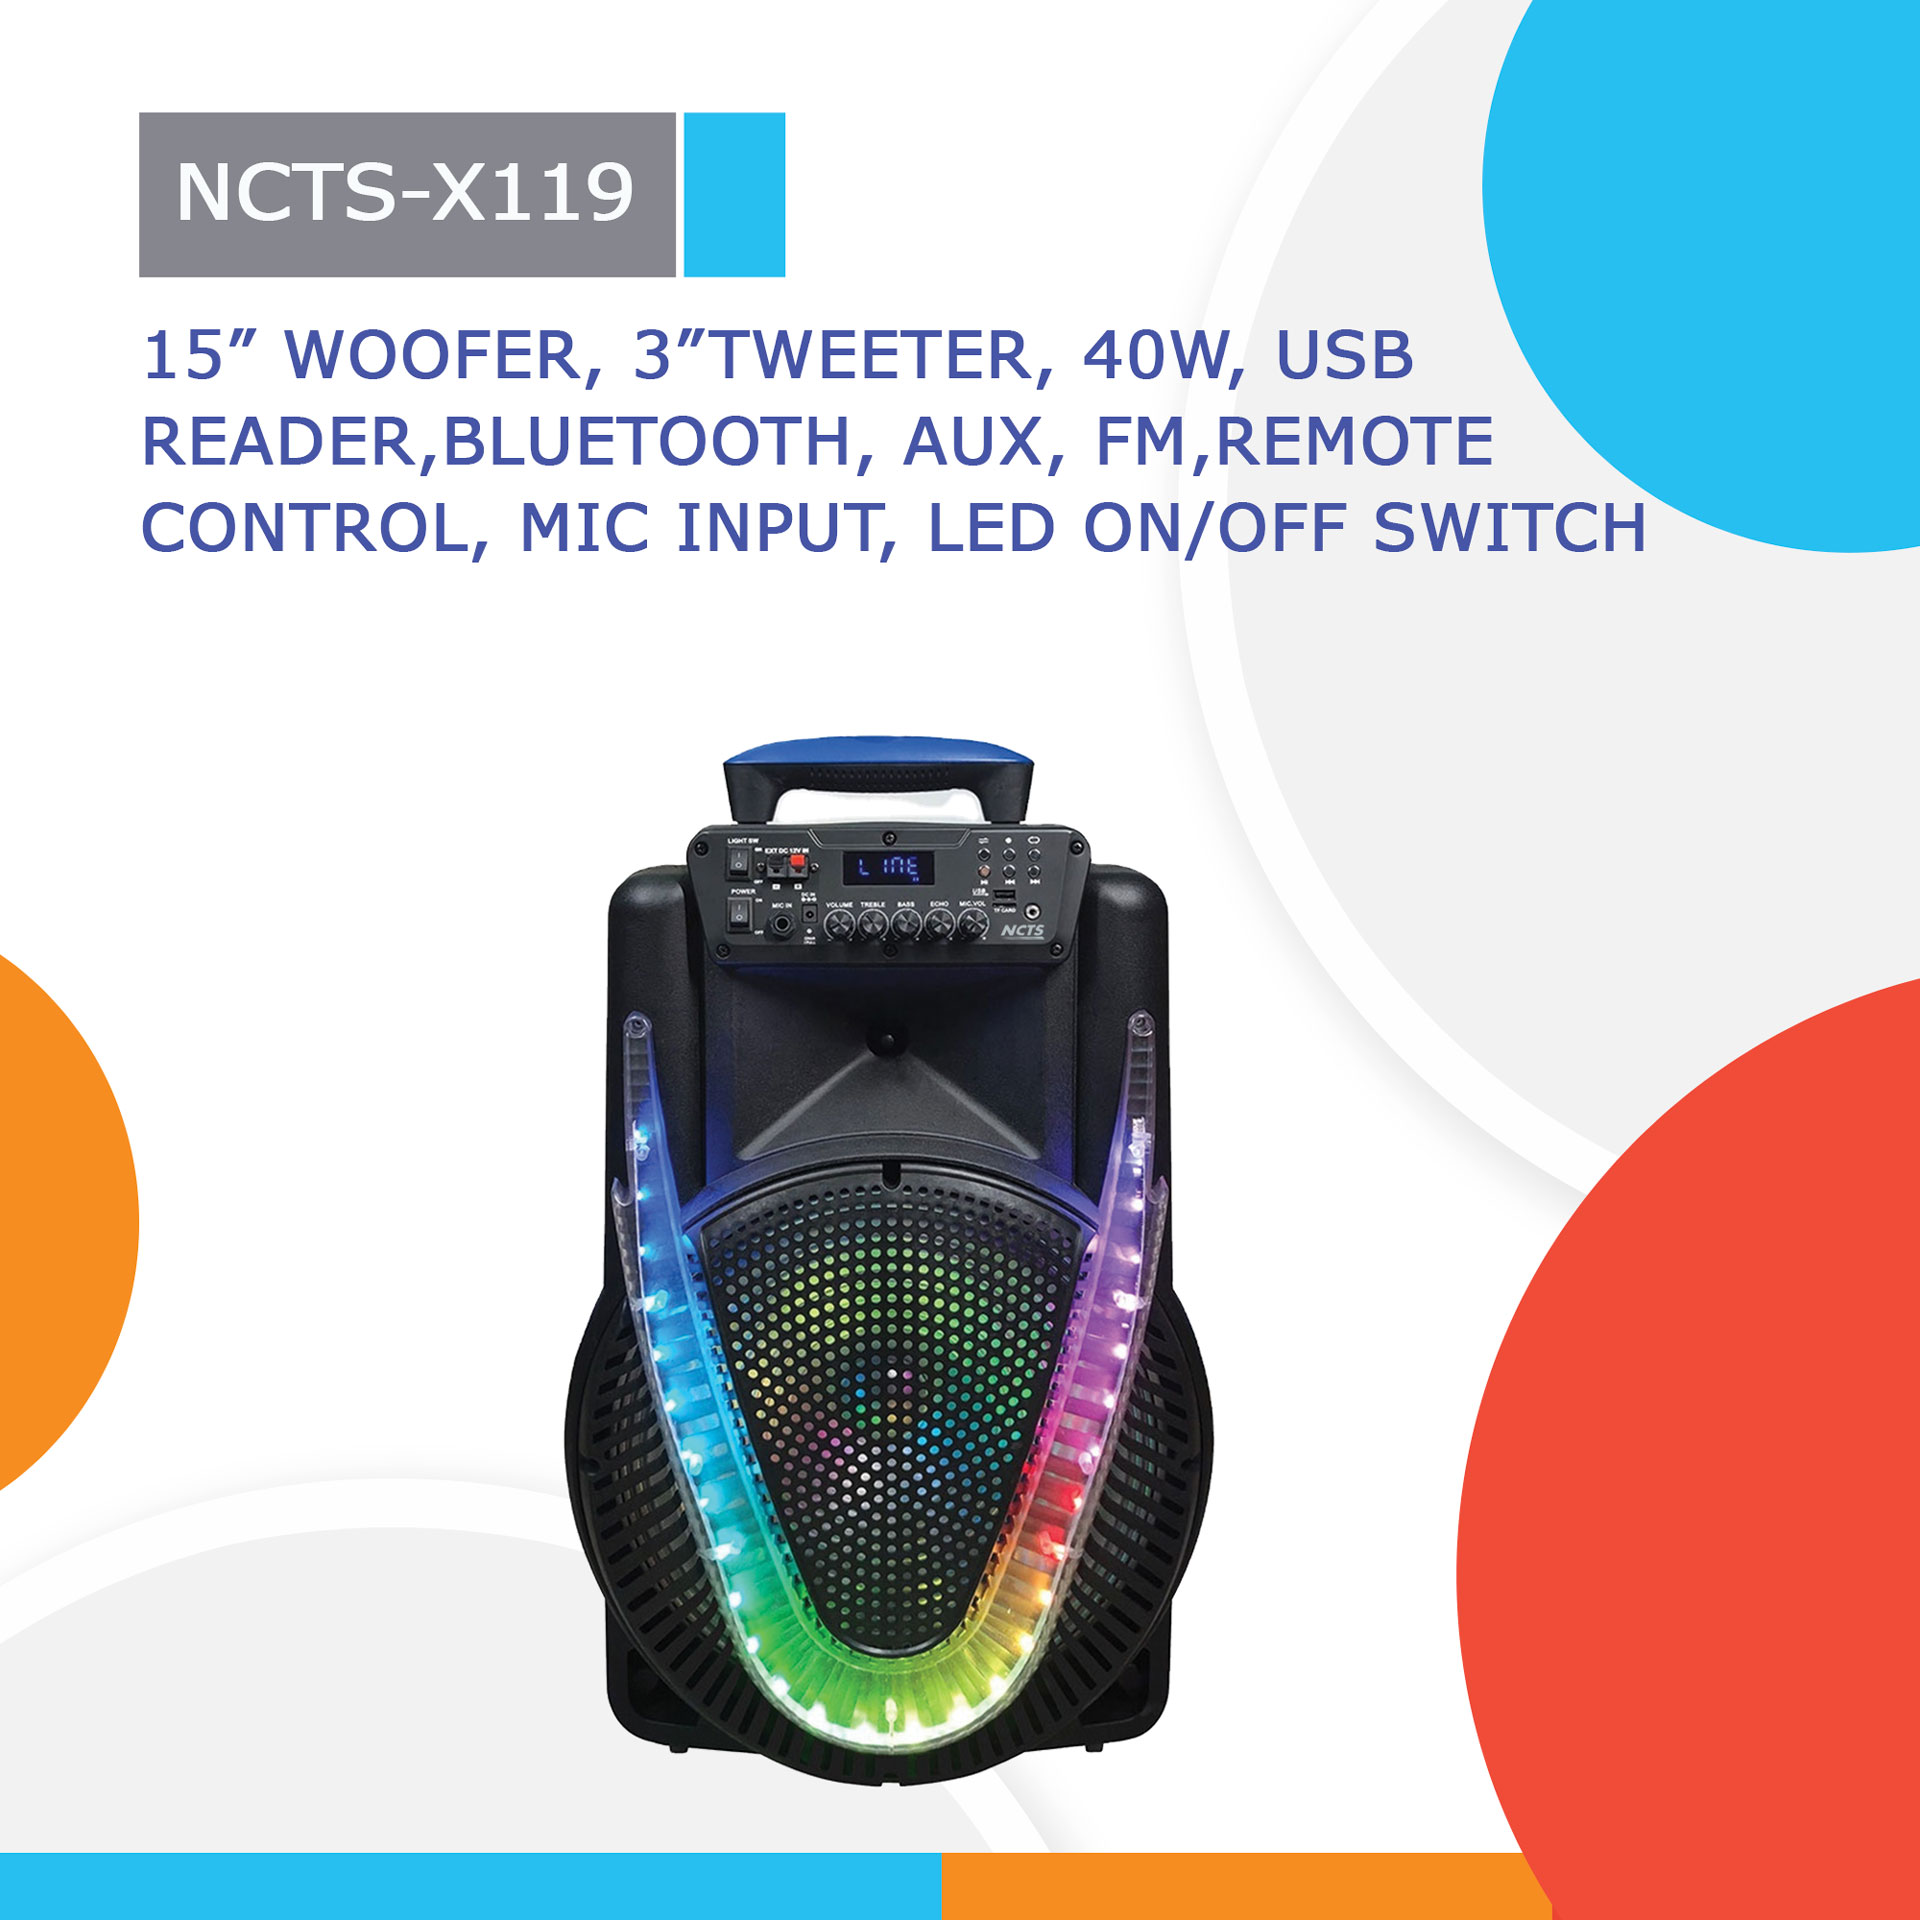 NCTS-X119